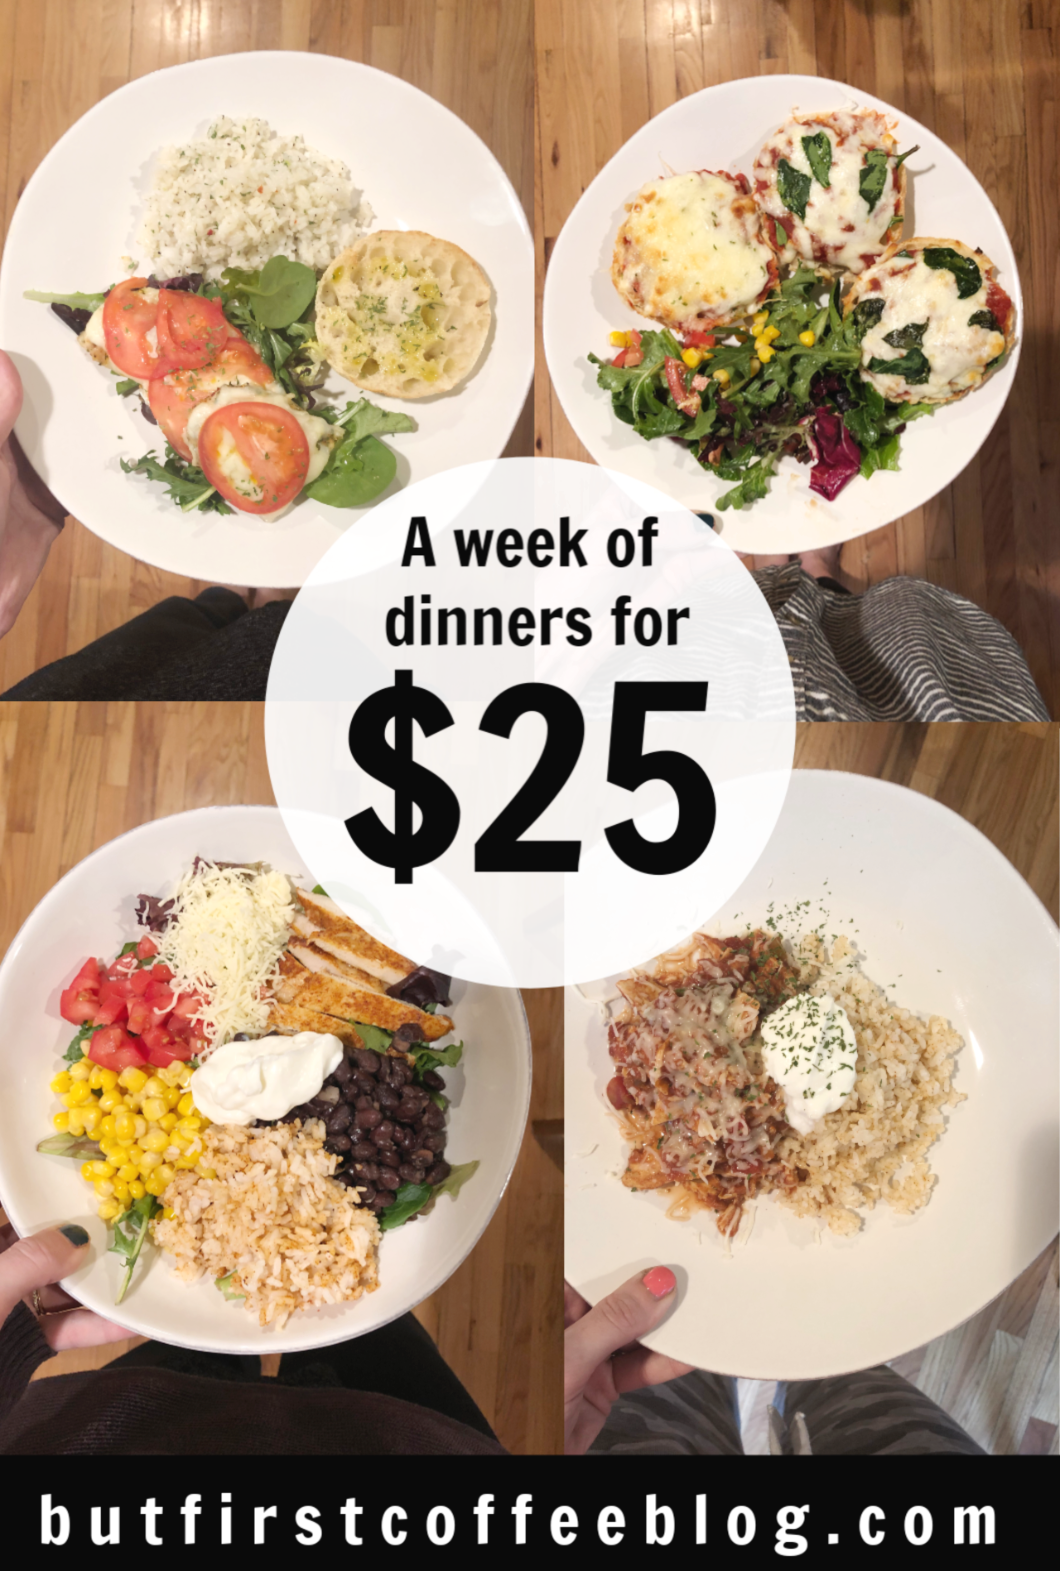 1 Week of Dinners for $25